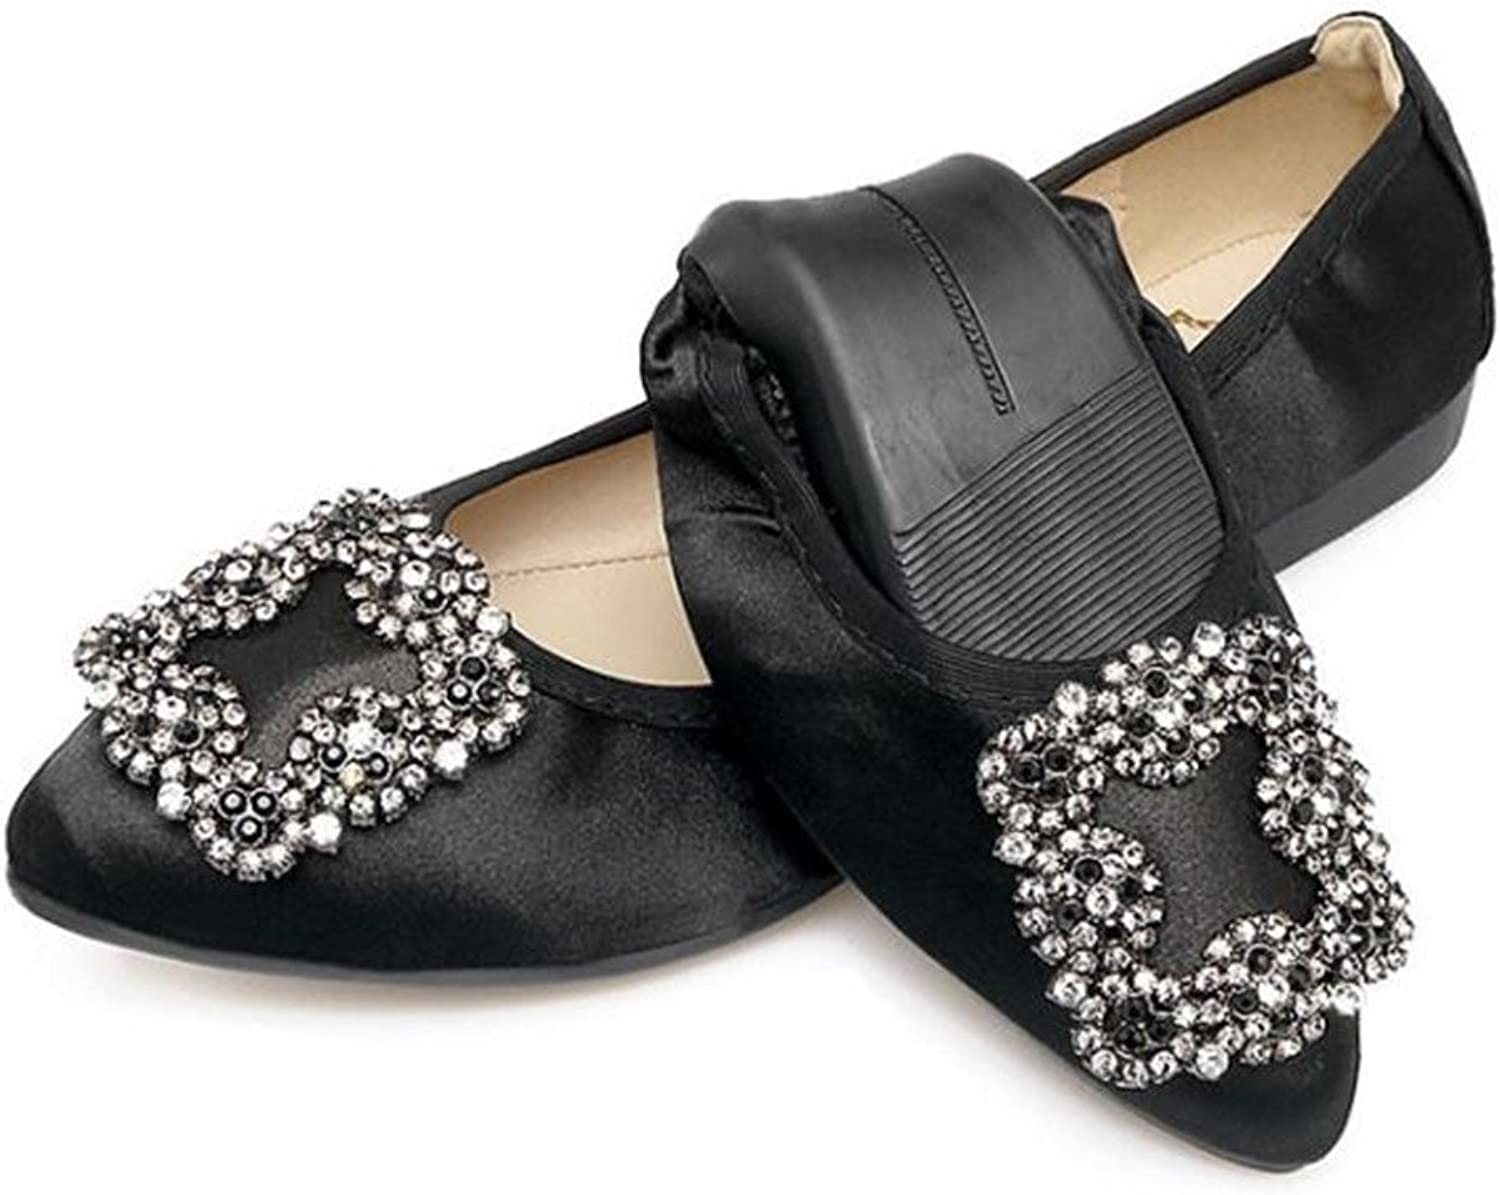 Dolwins Womens Foldable Rhinestone Pointed Toe Ballet Flats Comfort Slip On Flat shoes